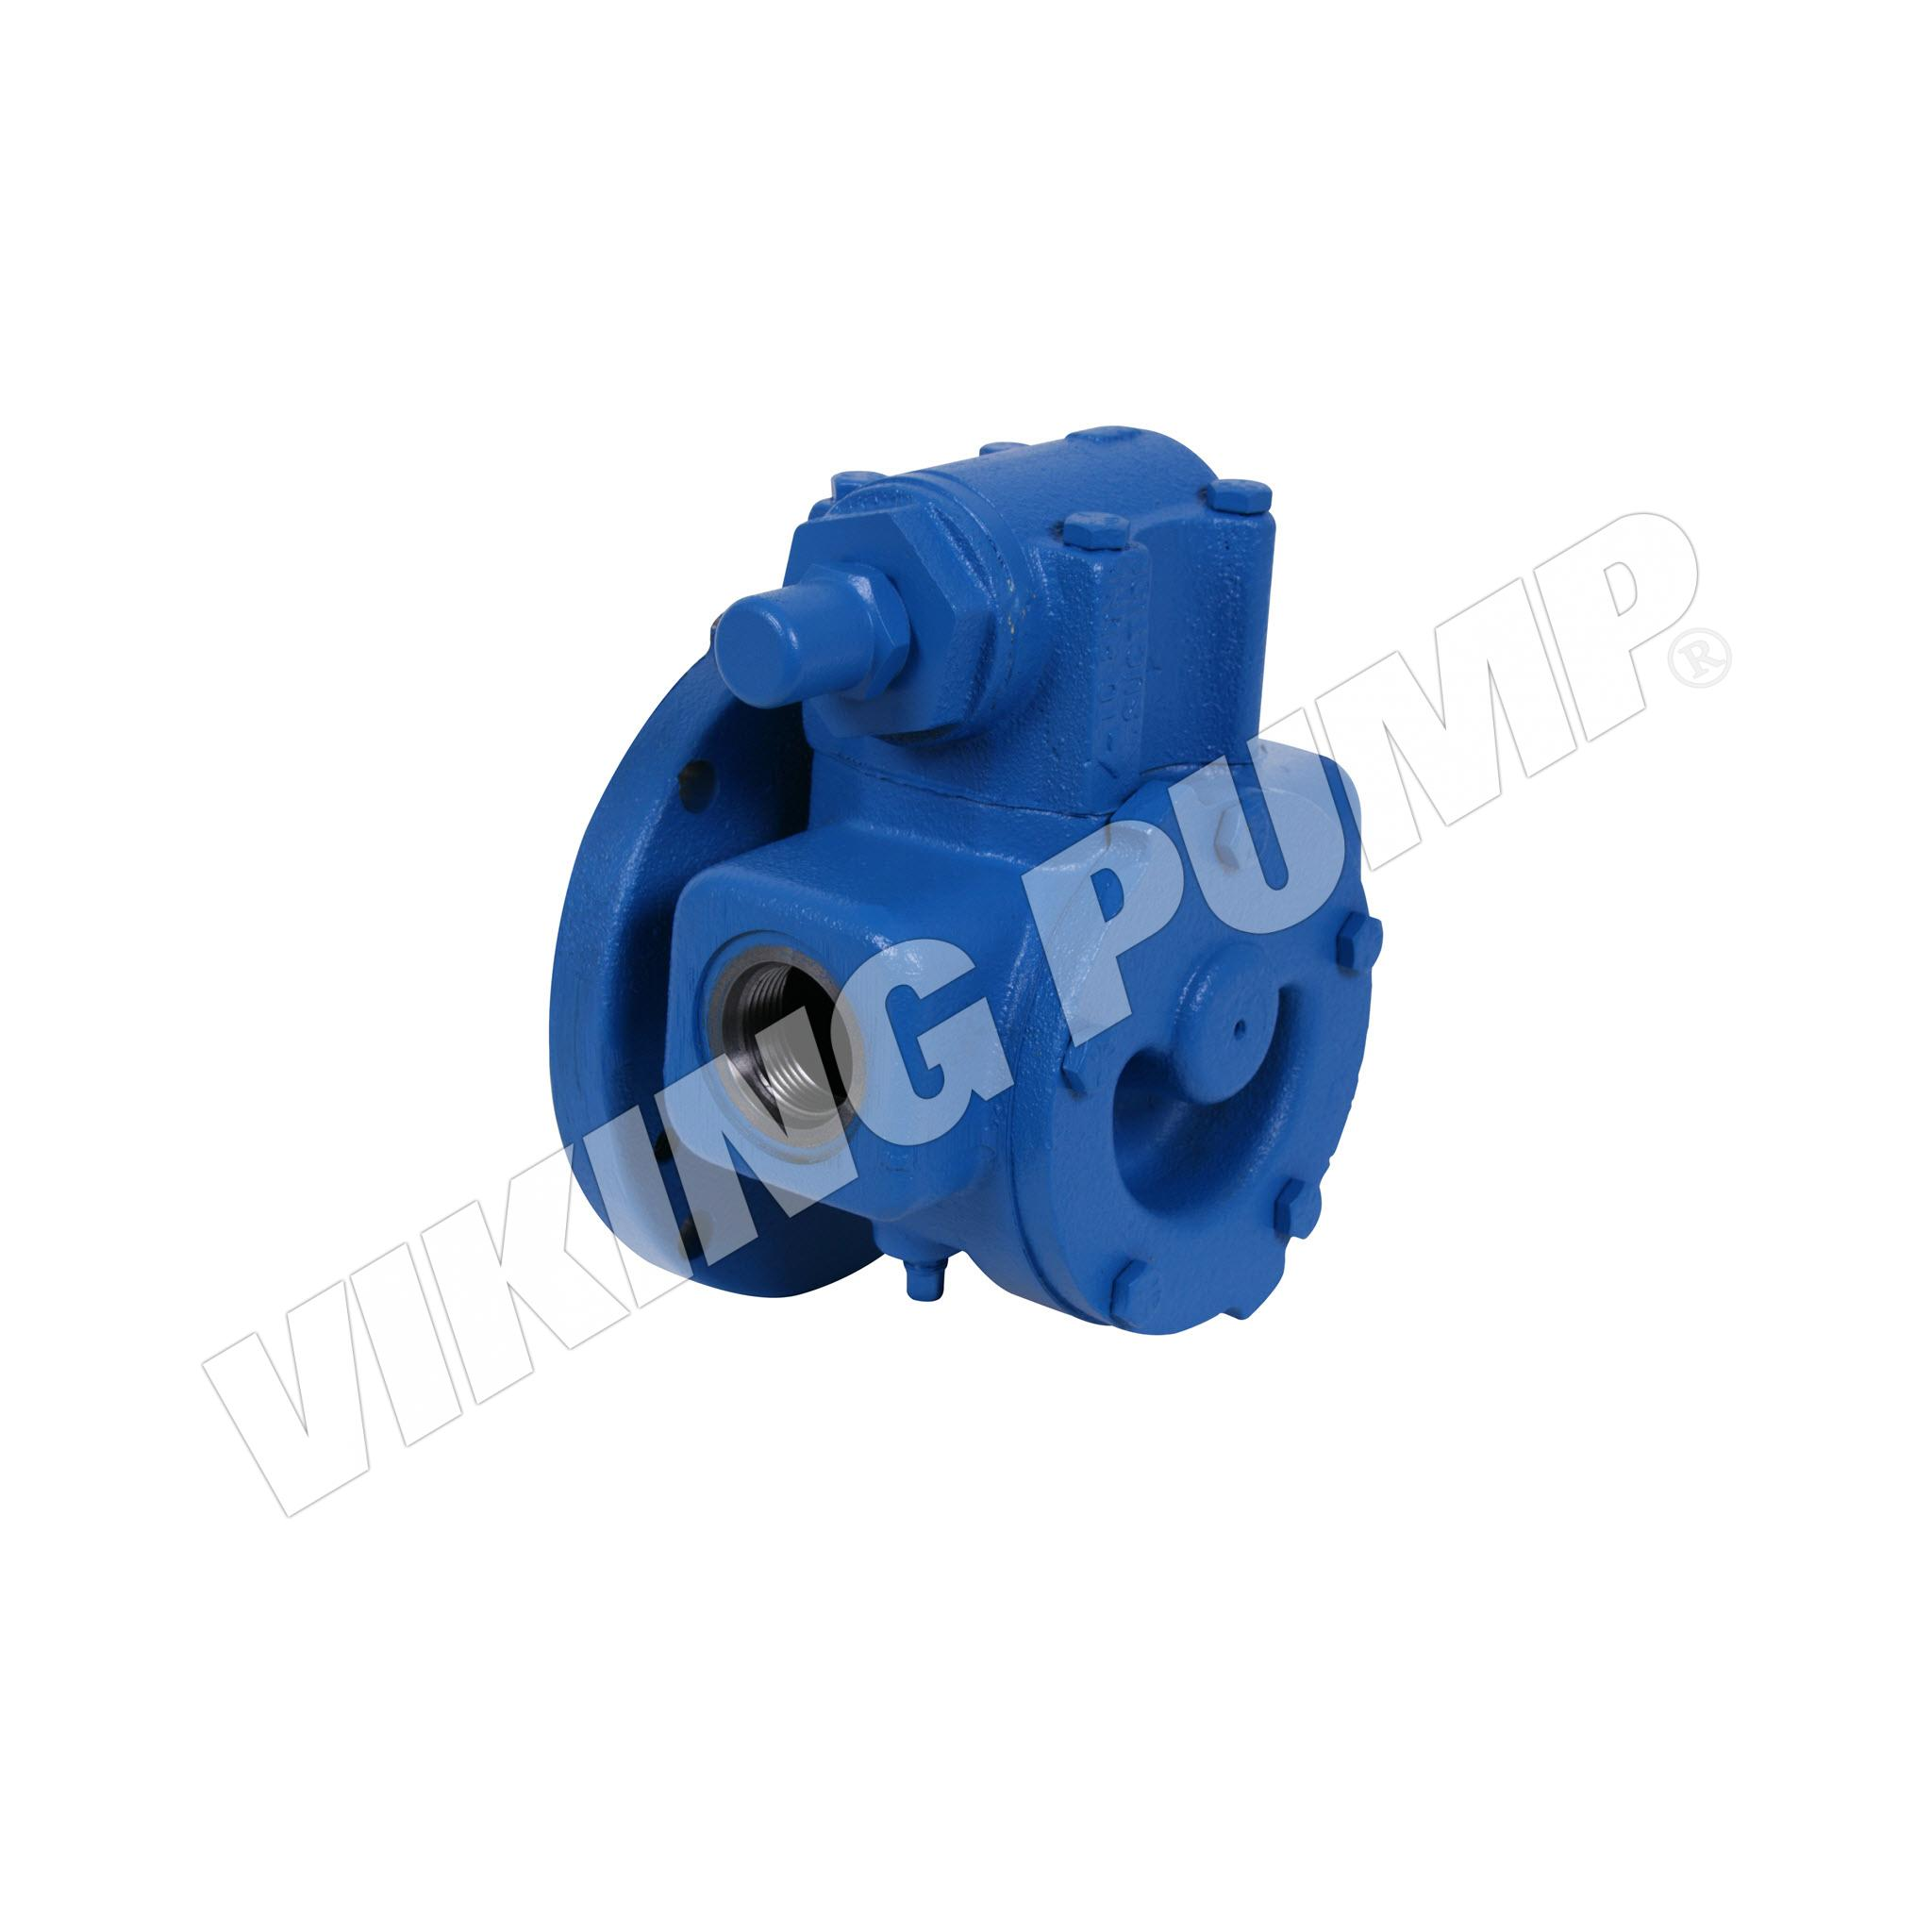 Model H75, Unmounted, Close-Coupled, Relief Valve Pump